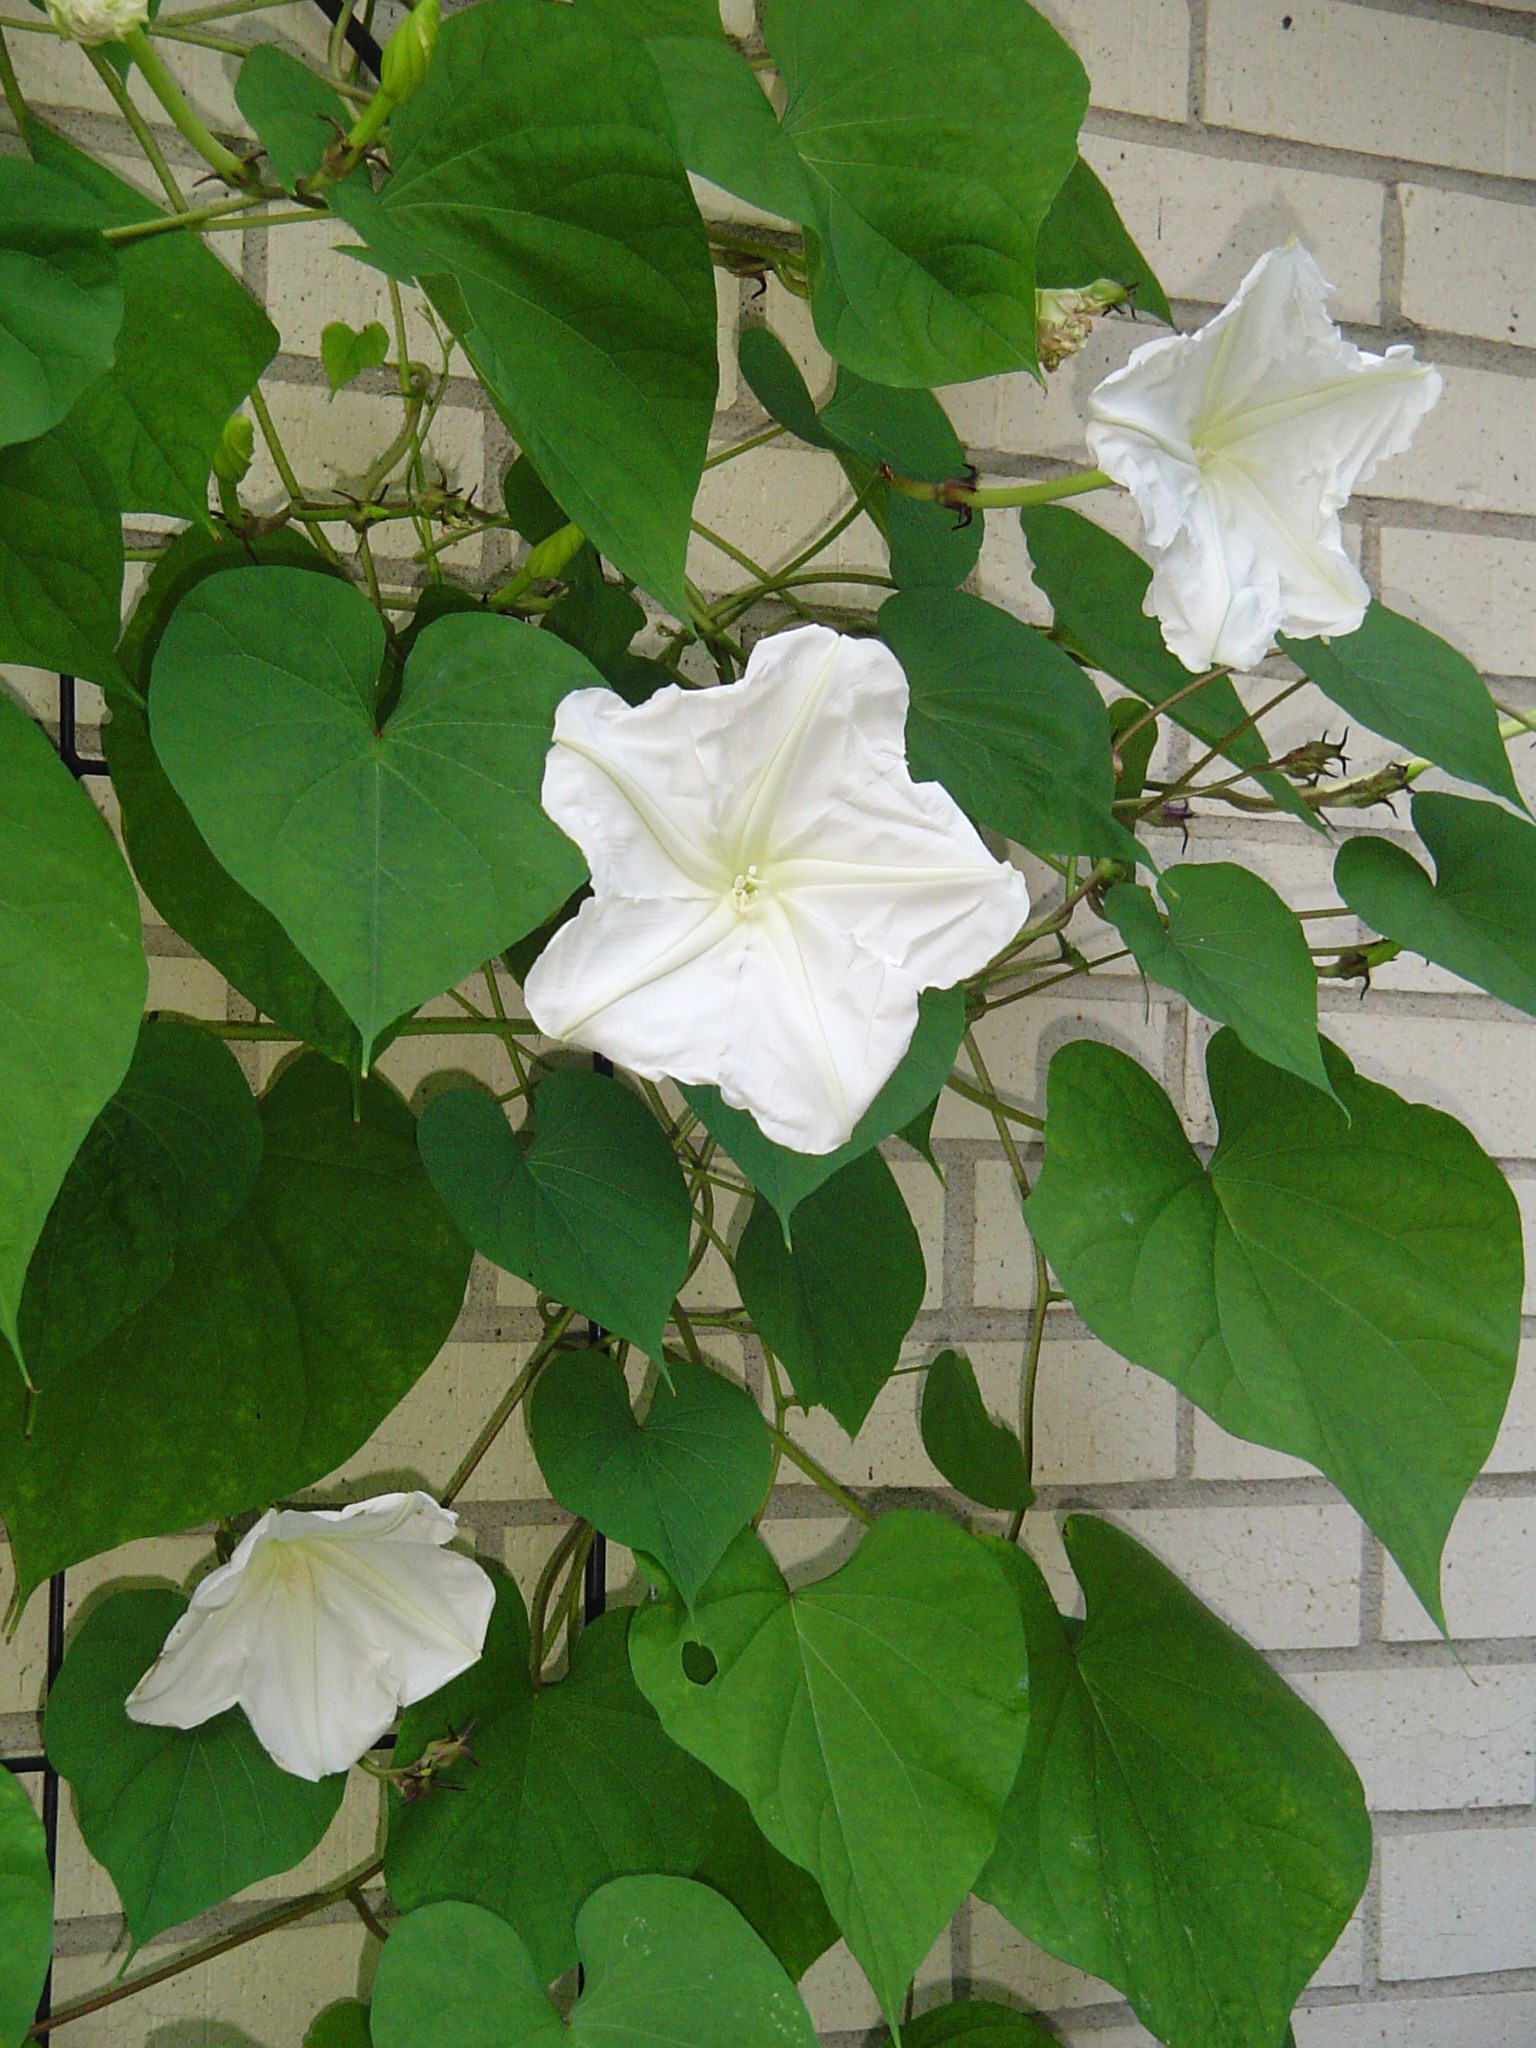 Moonflowers Another Pass Along Plant